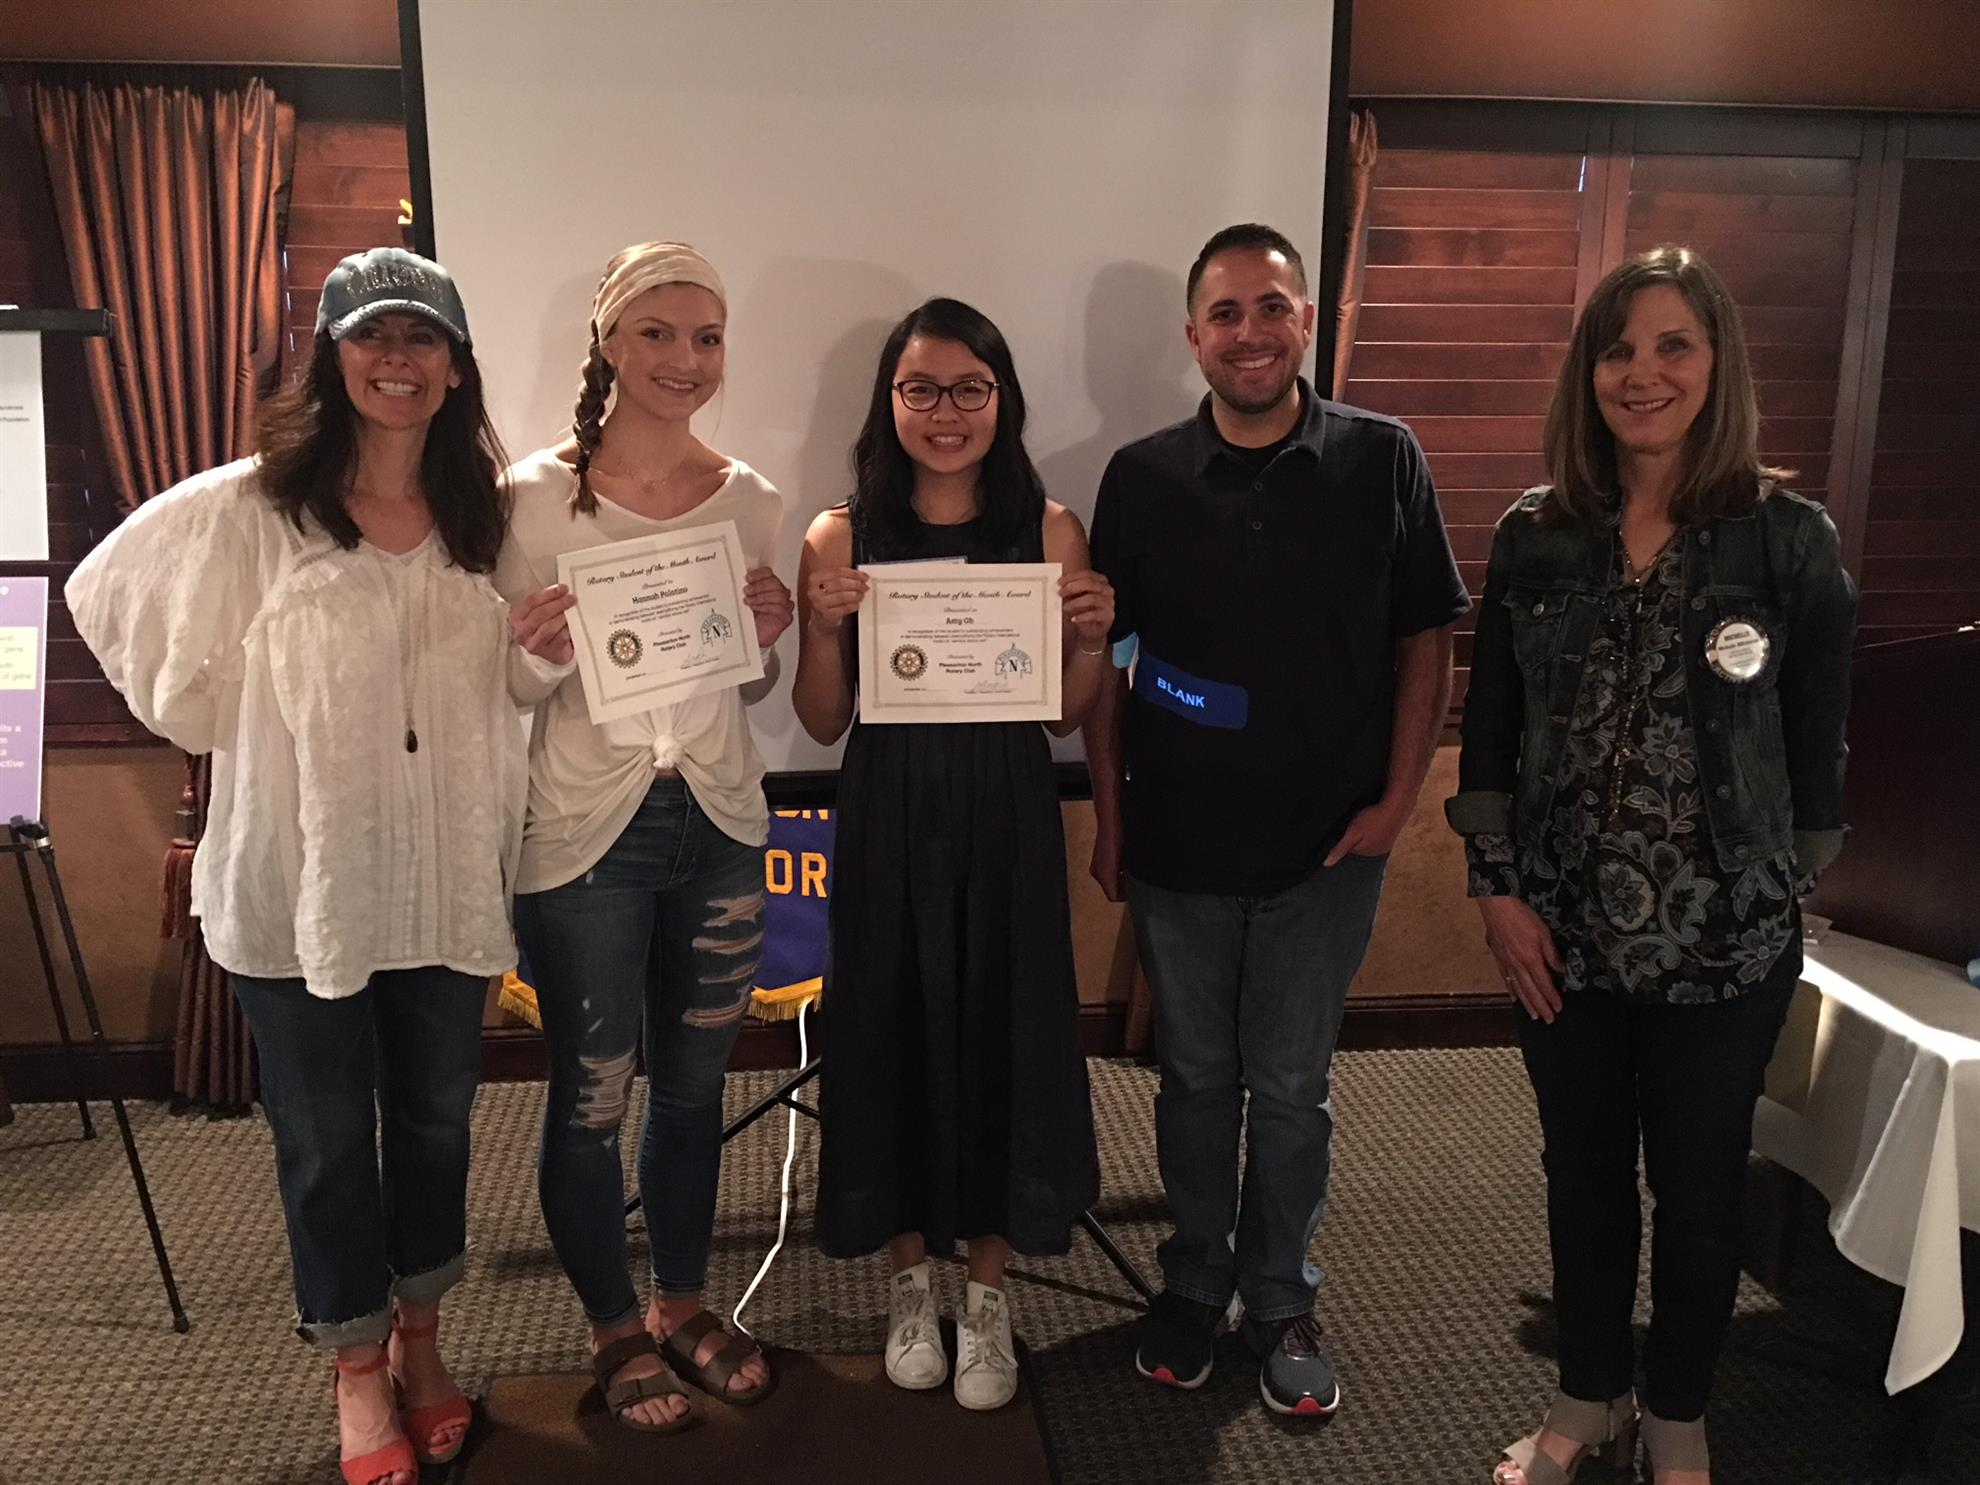 PNR Recognizes Students of the Month | Rotary Club of Pleasanton North